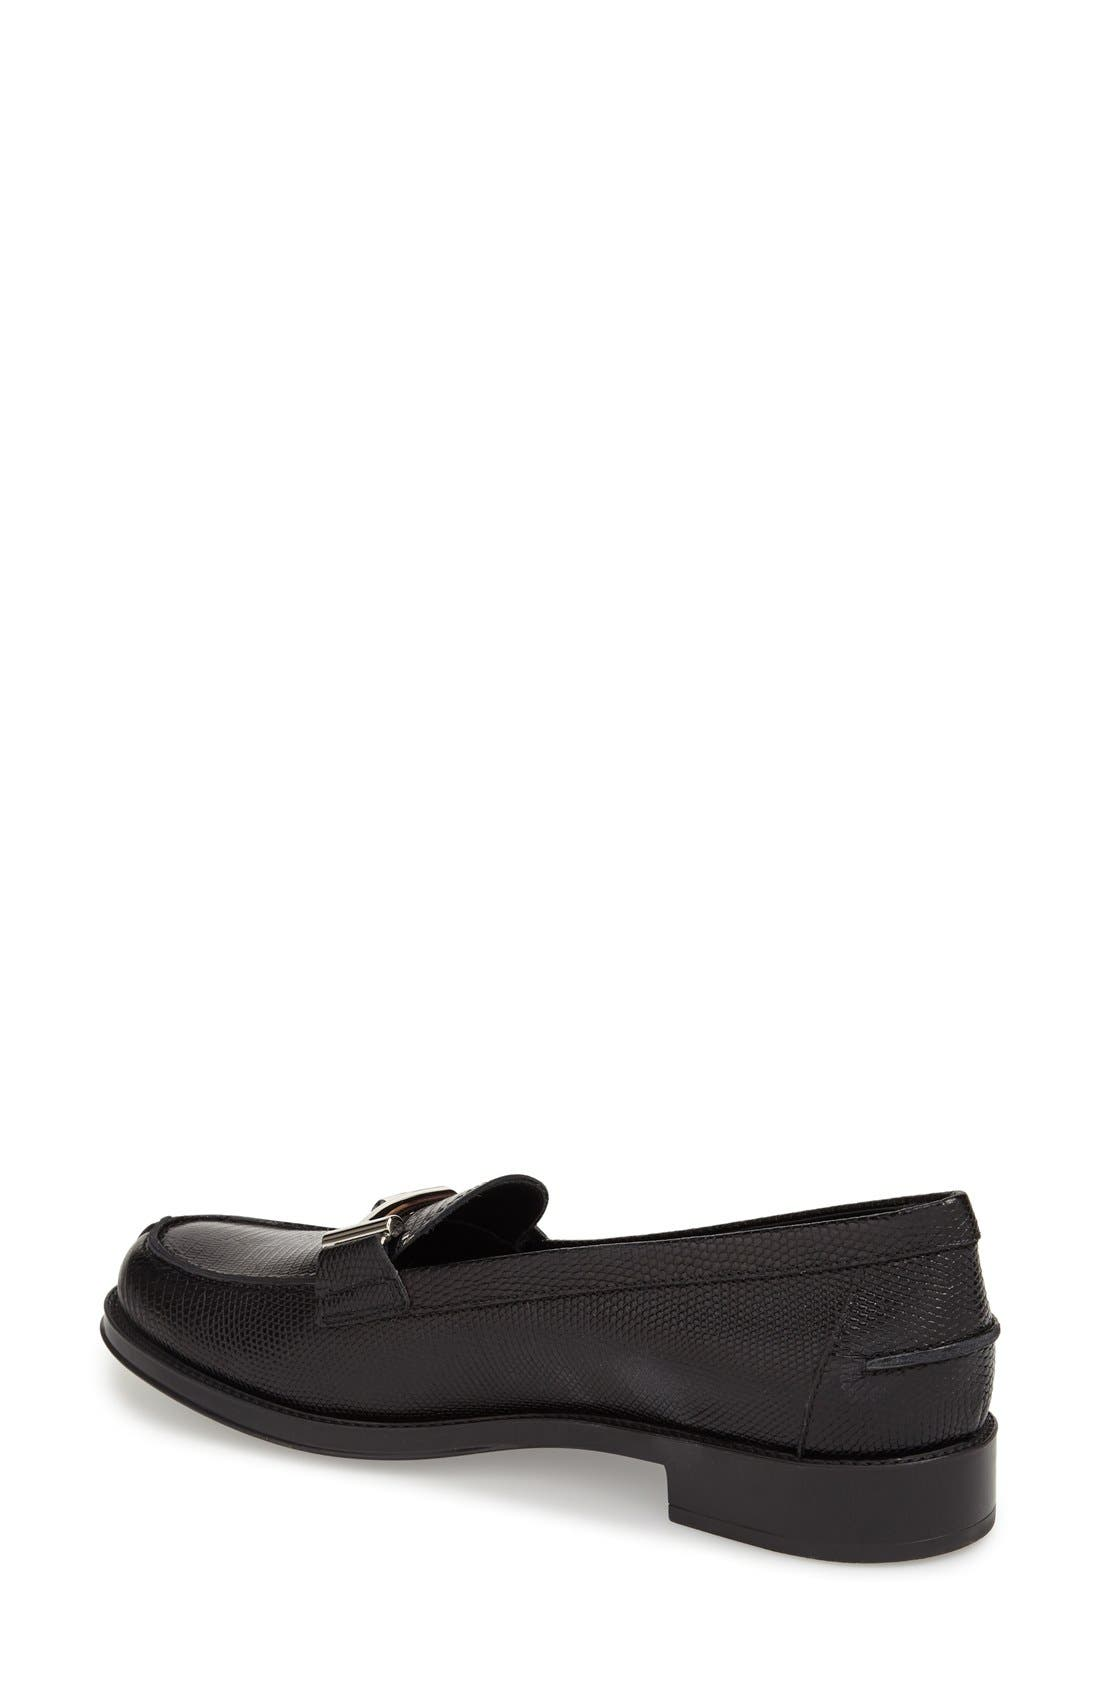 Alternate Image 2  - Tod's 'Double T' Loafer (Women)